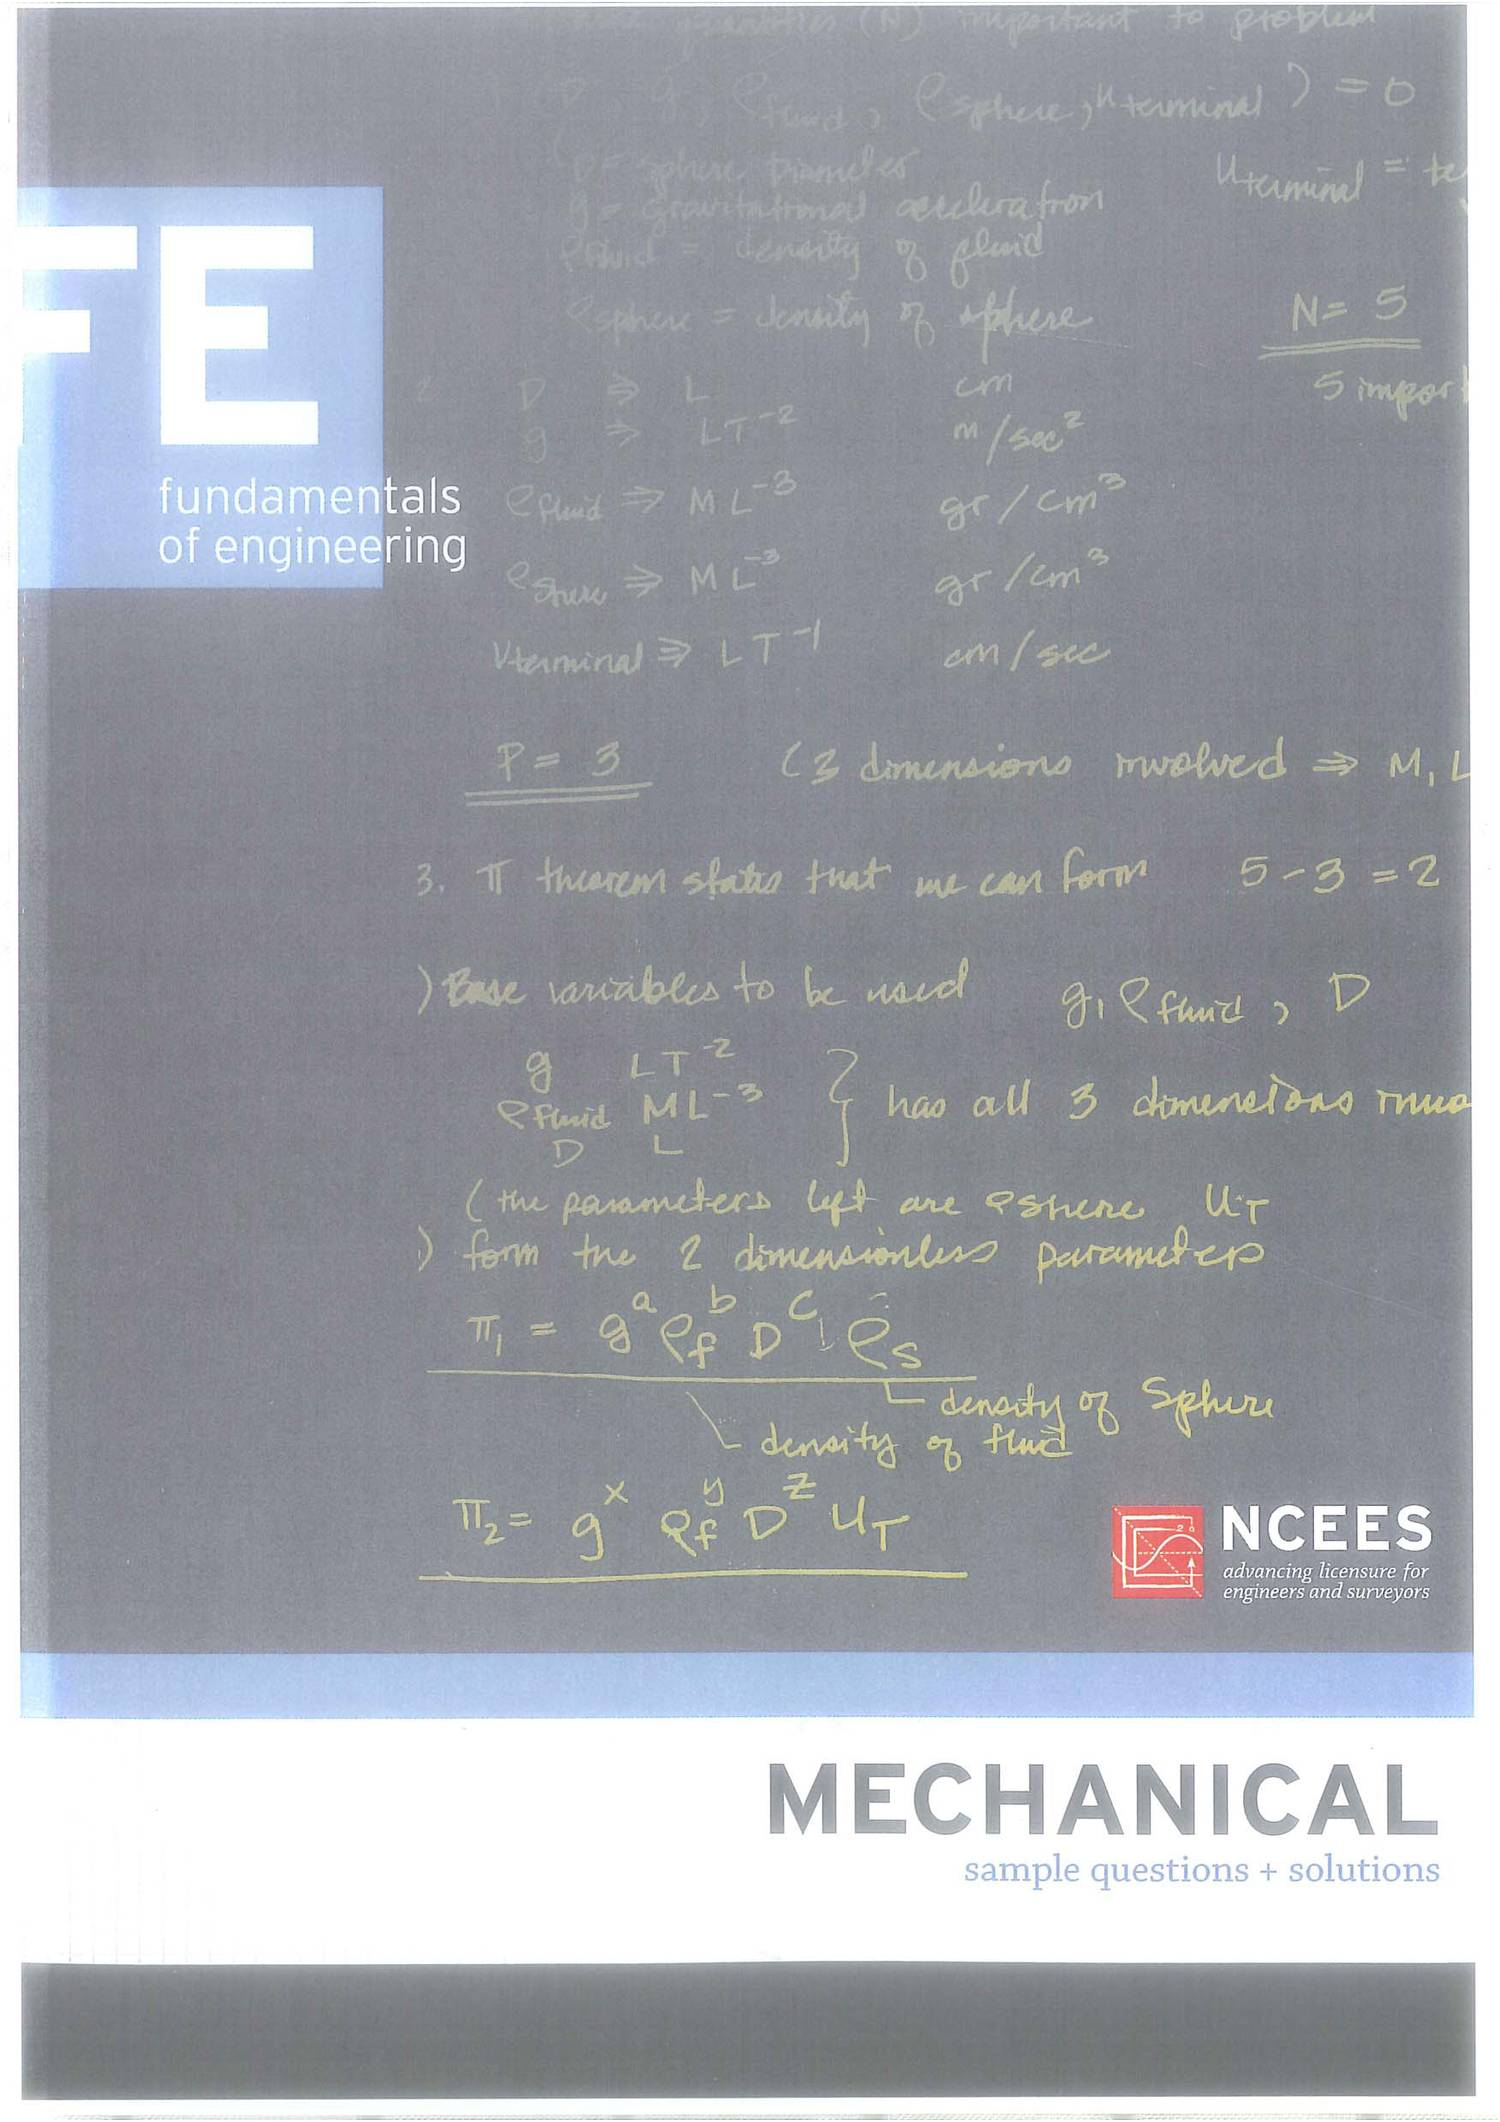 NCEES-FE MECHANICAL Practice Exam pdf | DocDroid